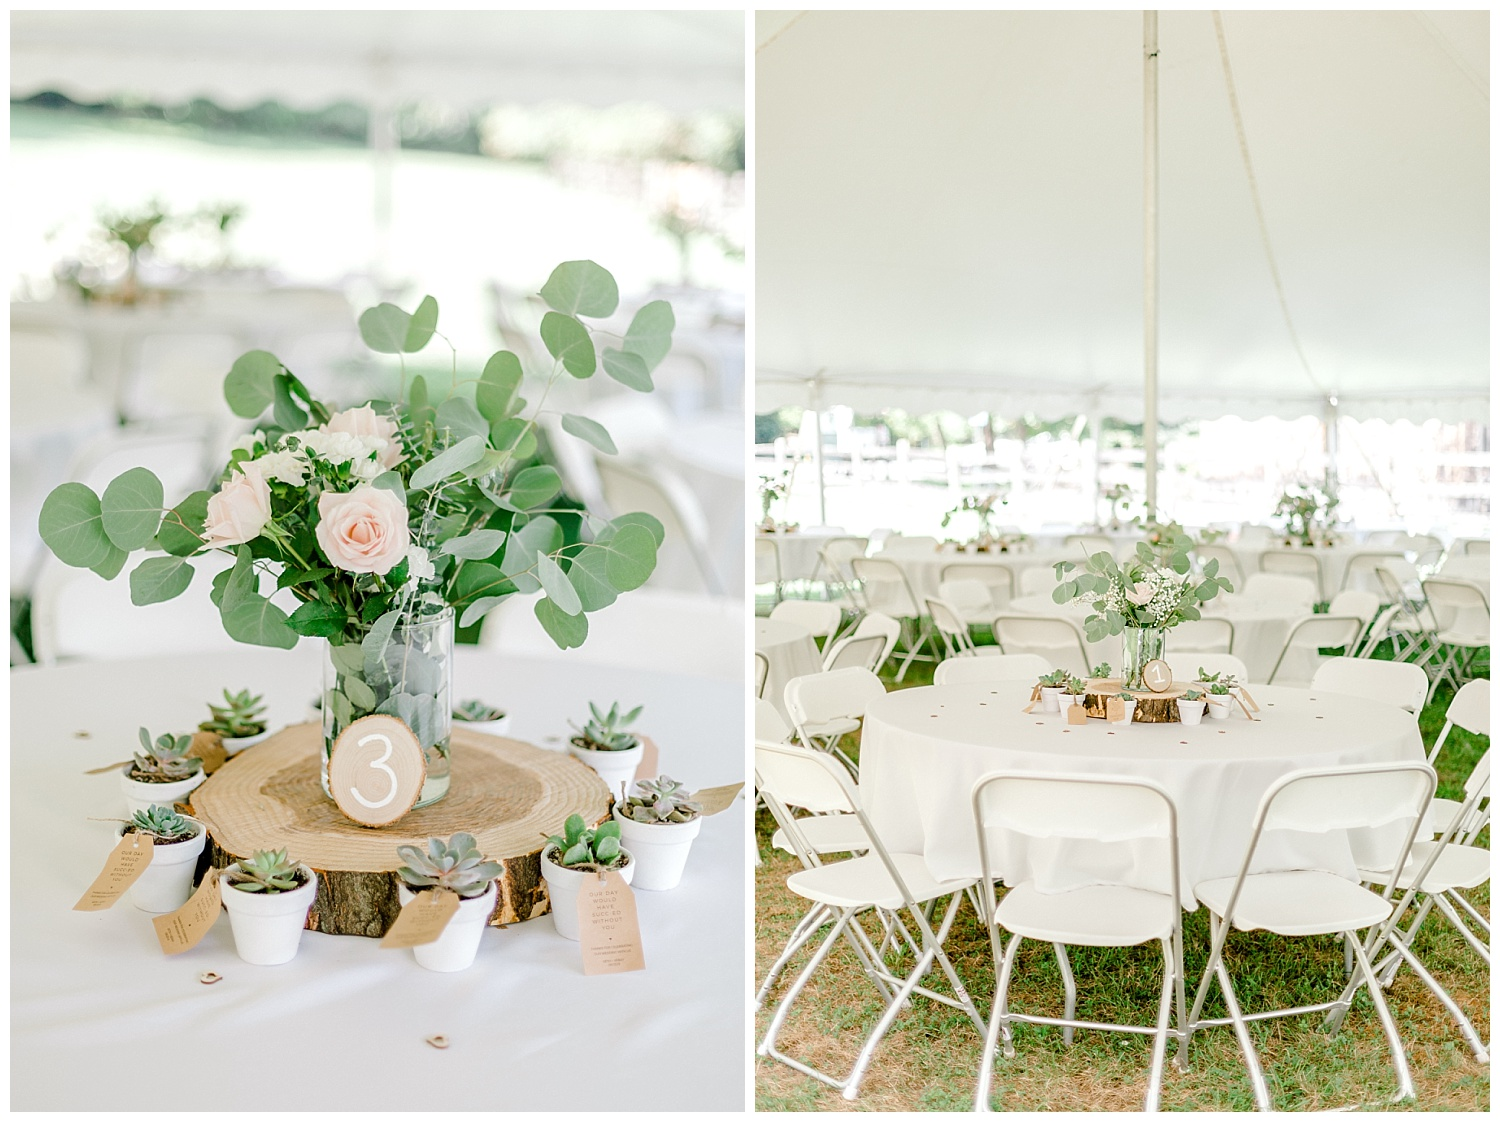 Olive green and white rustic barn wedding at burnside plantation in bethlehem pennsylvania by PA based destination wedding and lifestyle photographer Lytle photography (35).jpg